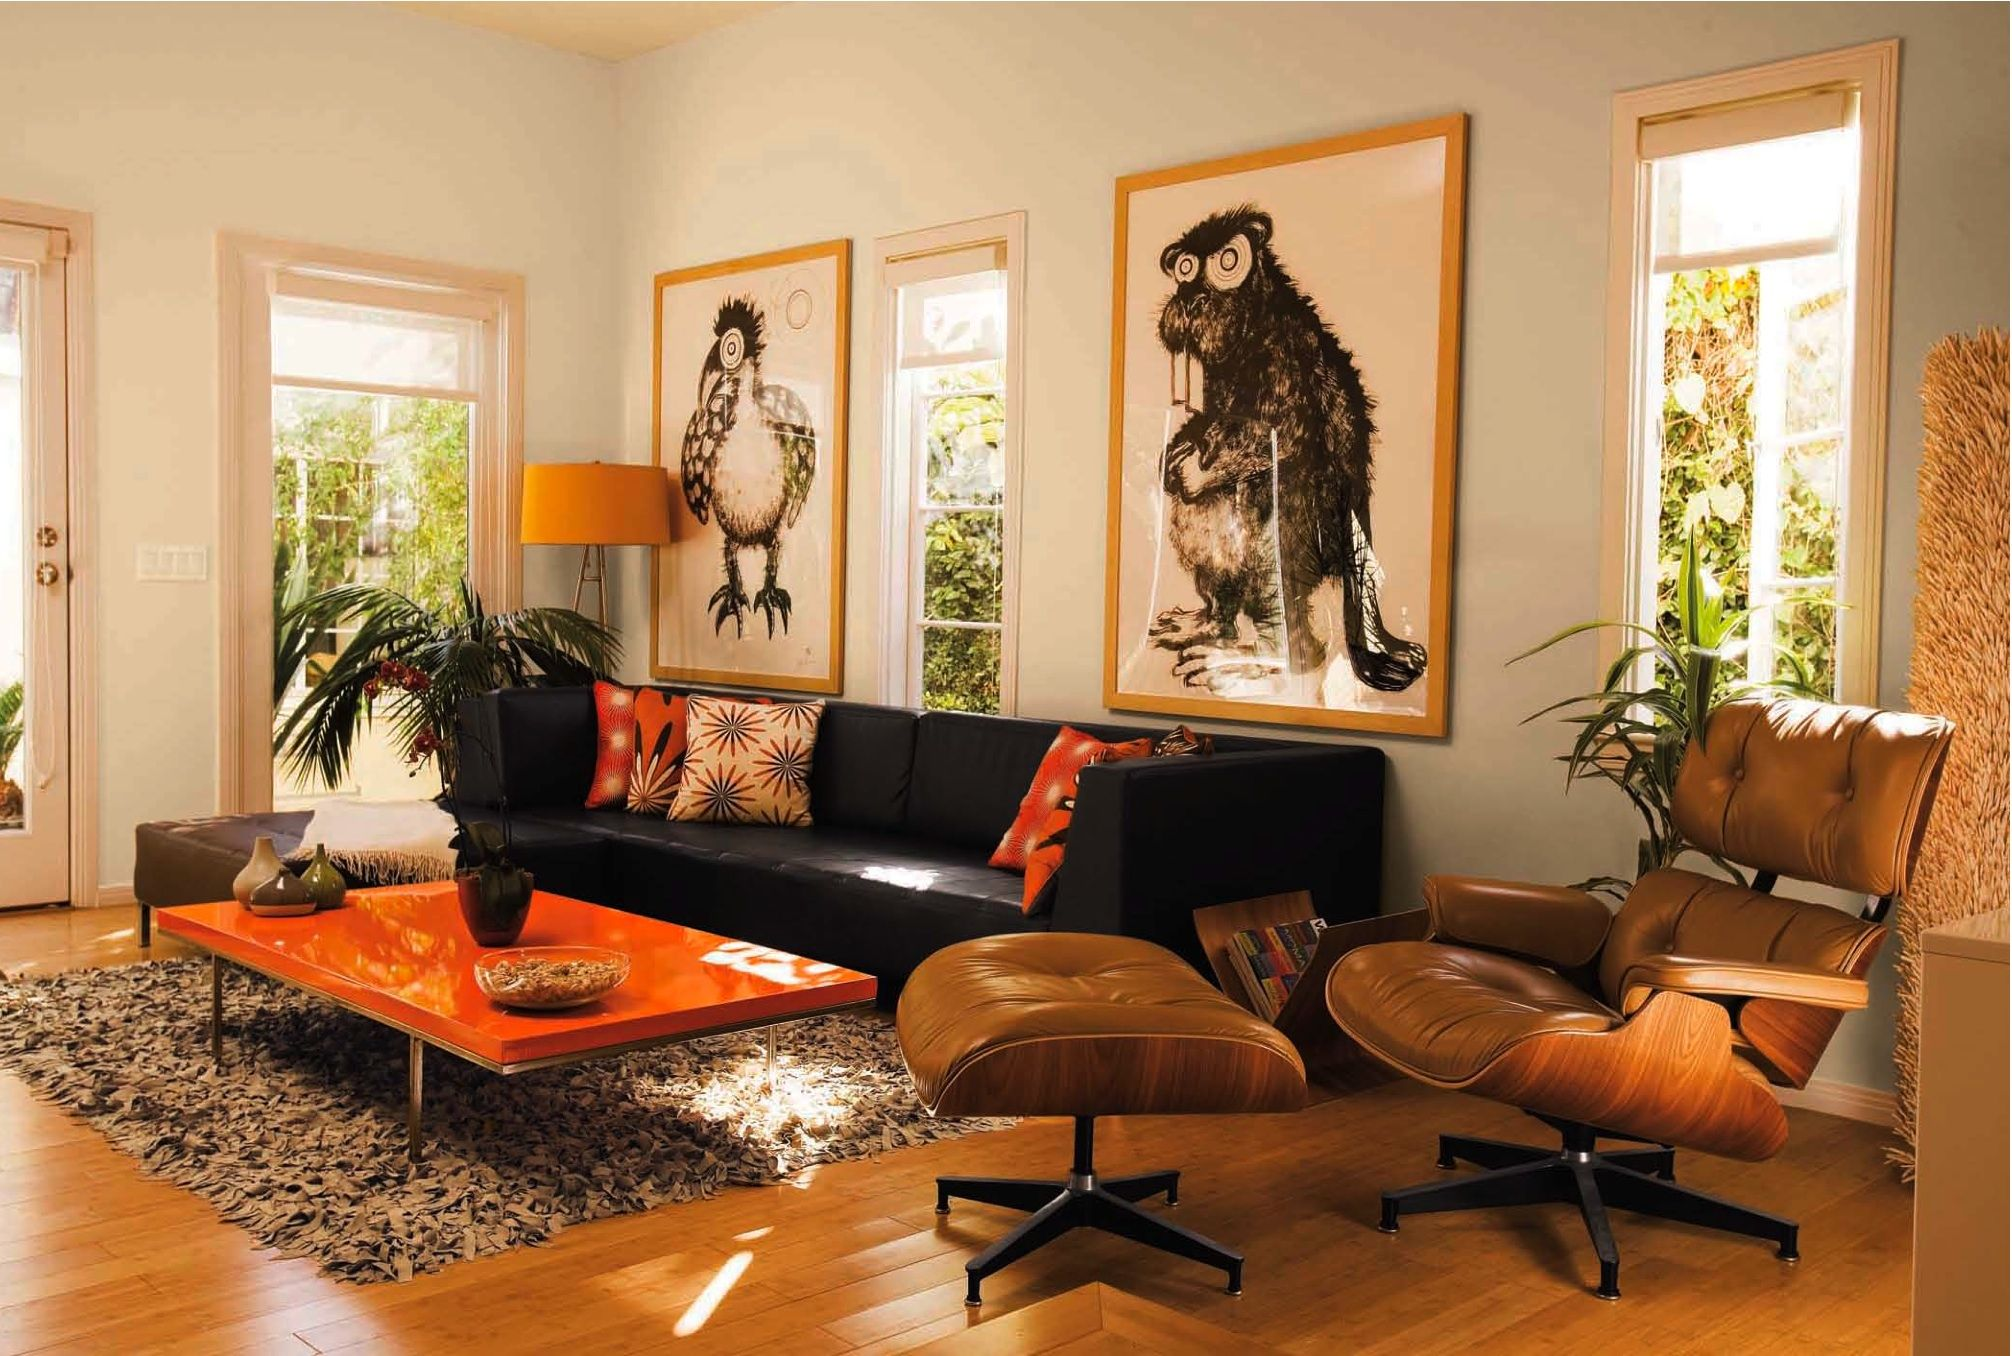 Traditional Living Room With Orange Table With Black Sofa